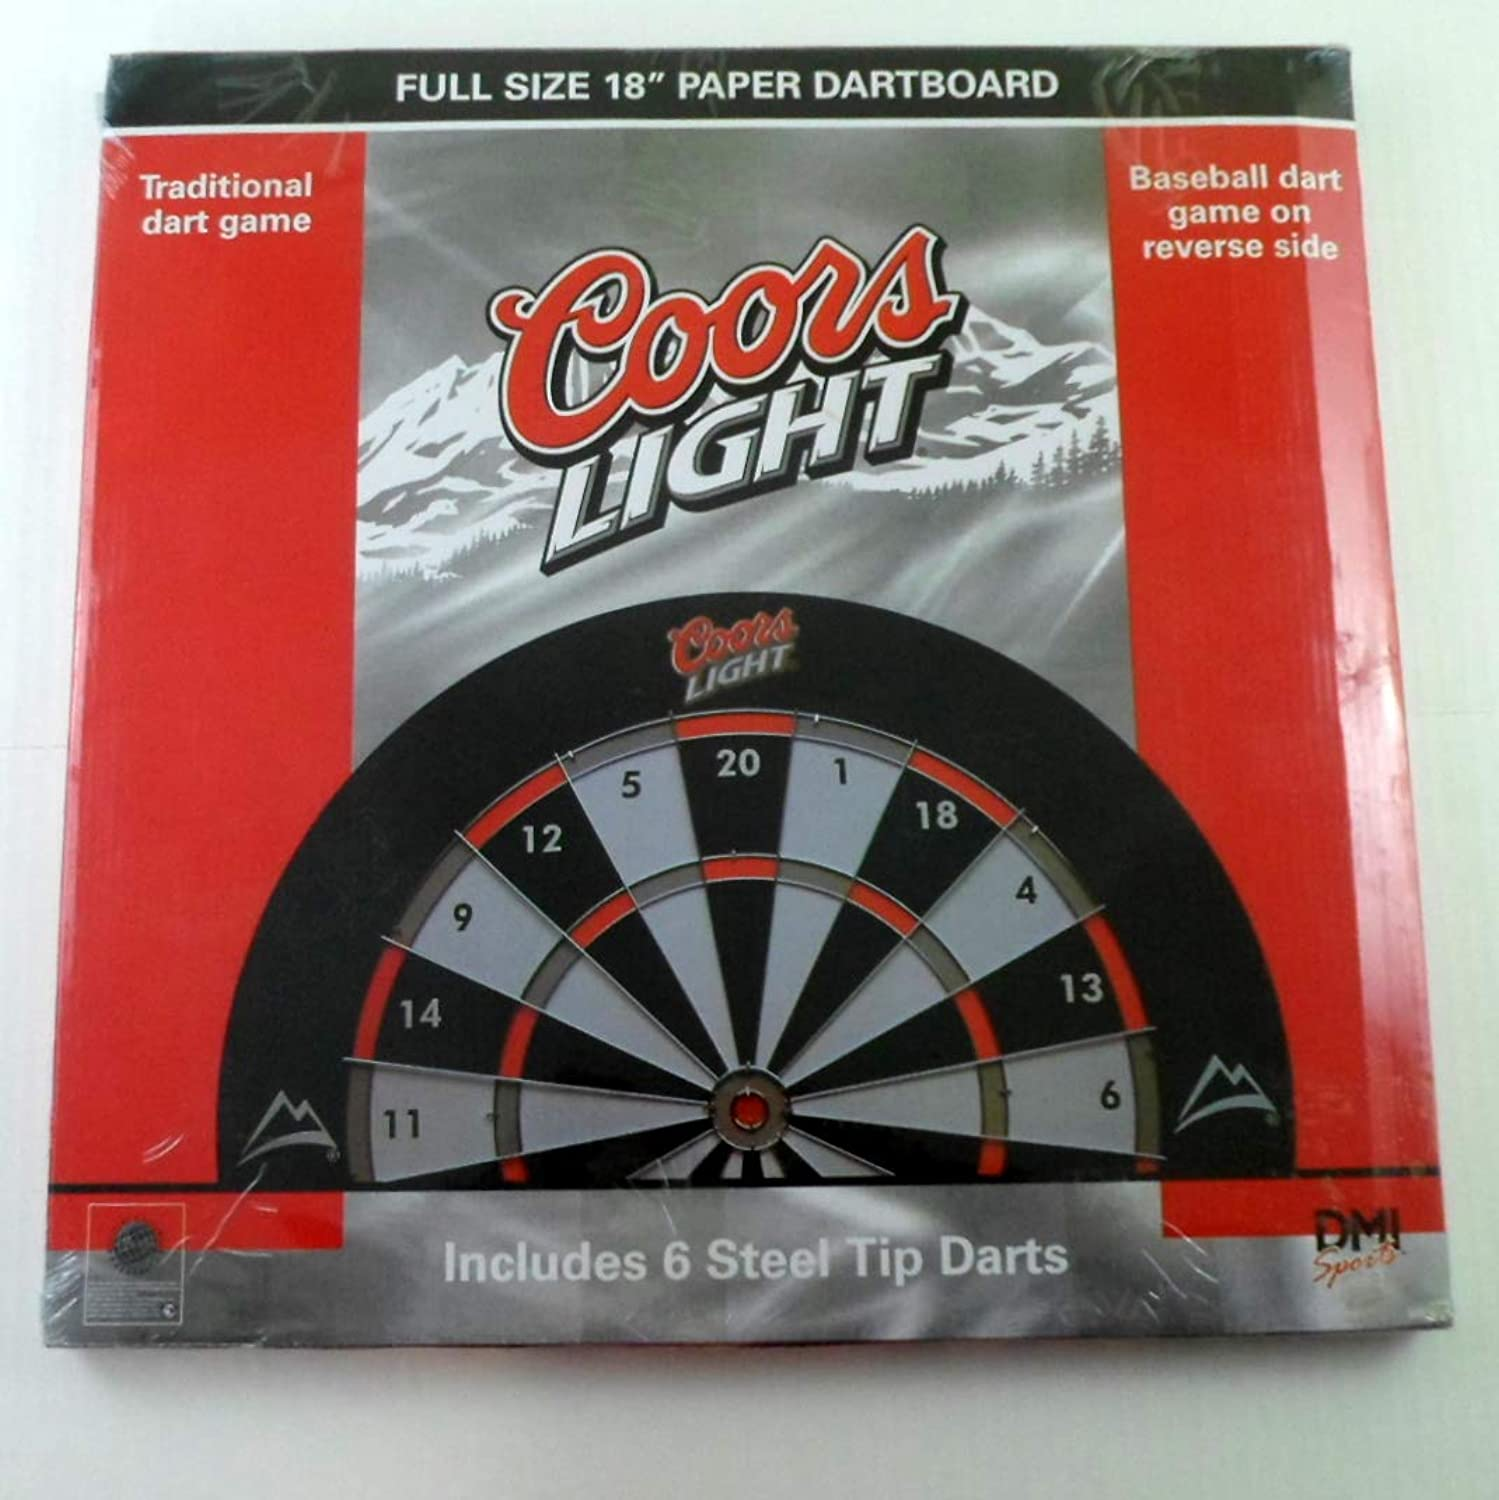 Coors Light Full Size 18  Dartboard with 6 Steel Tip Darts